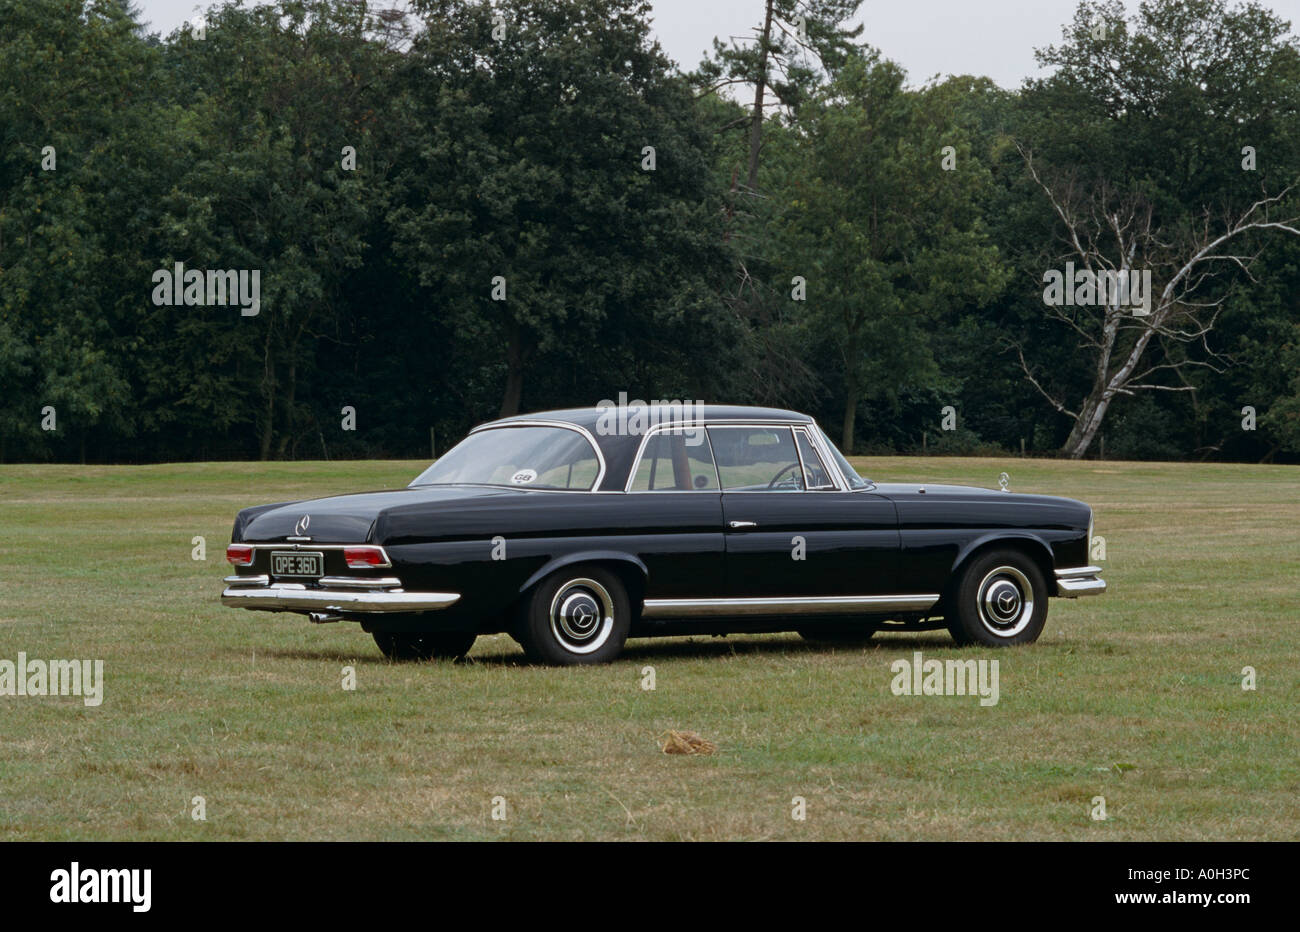 Mercedes Benz 250se Coupe Of 1966 1965 To 1967 Stock